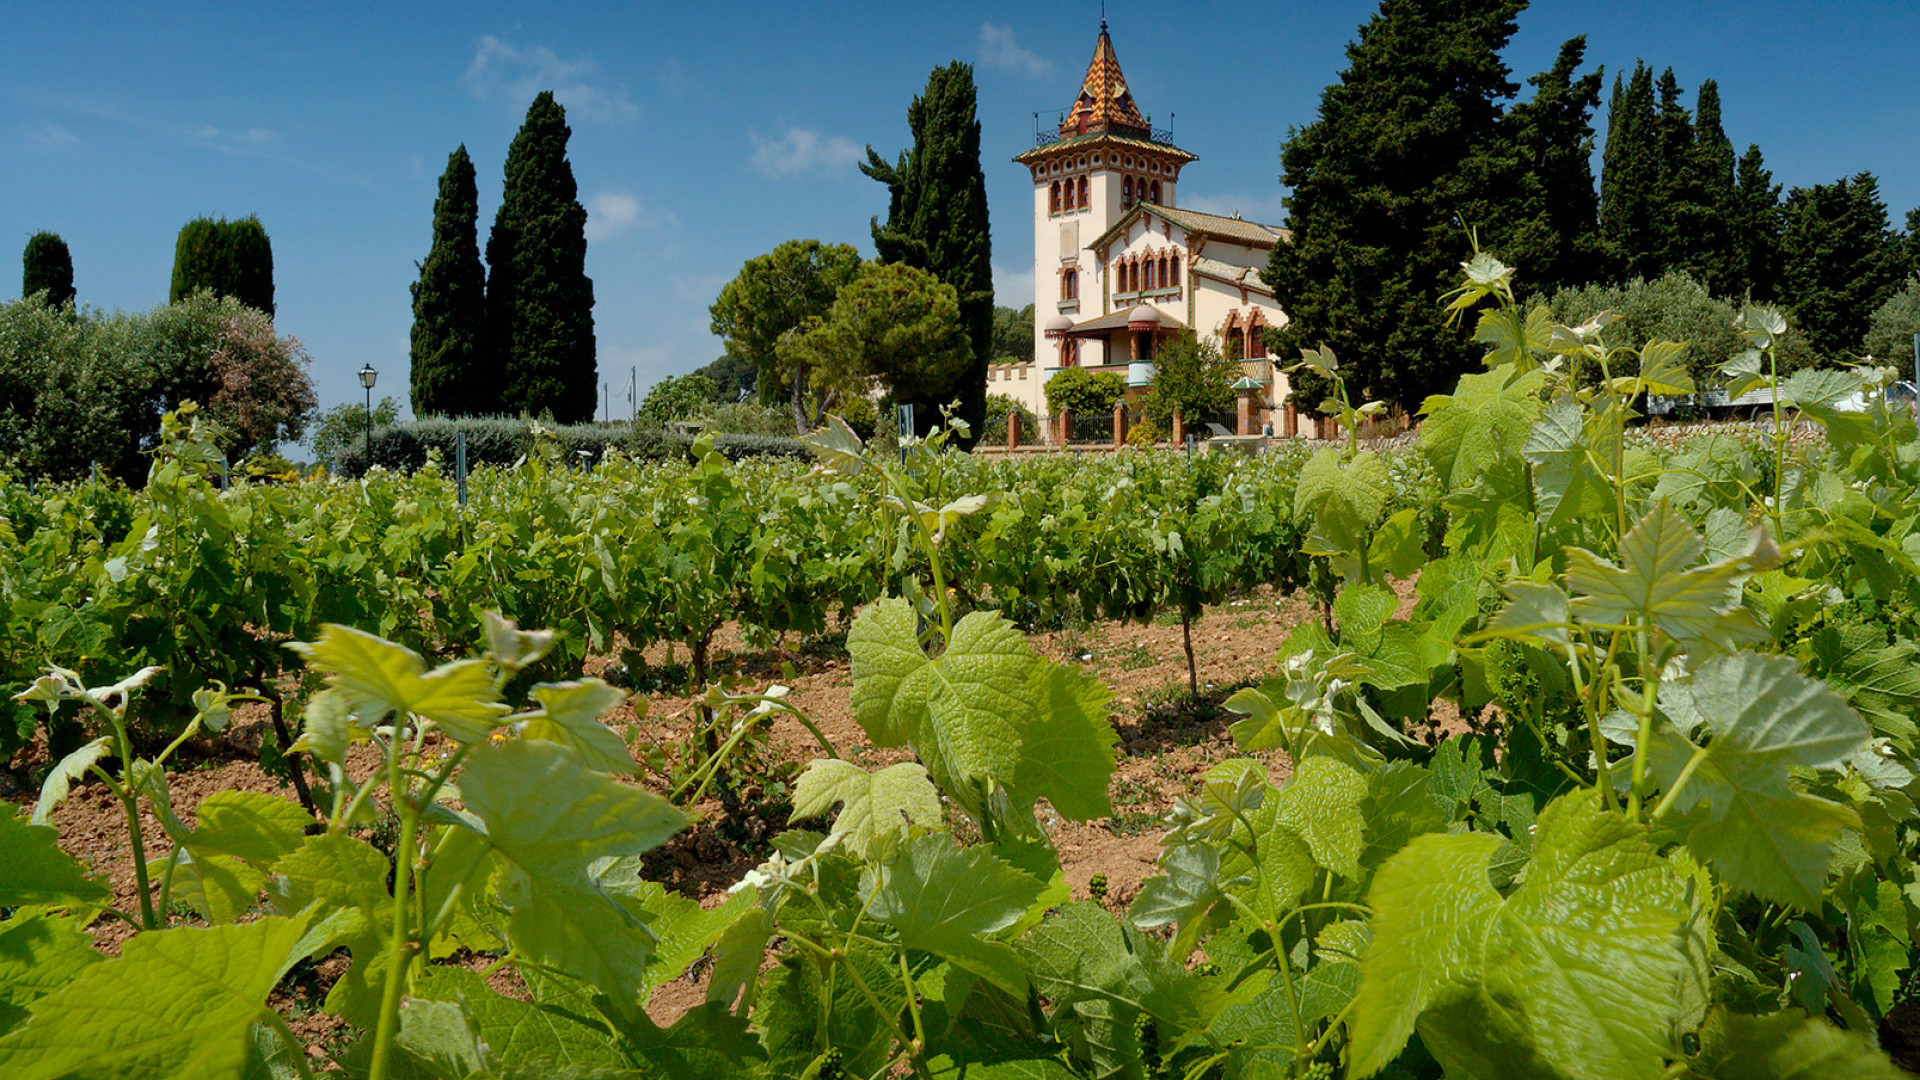 Vineyard and chateau in Catalonia